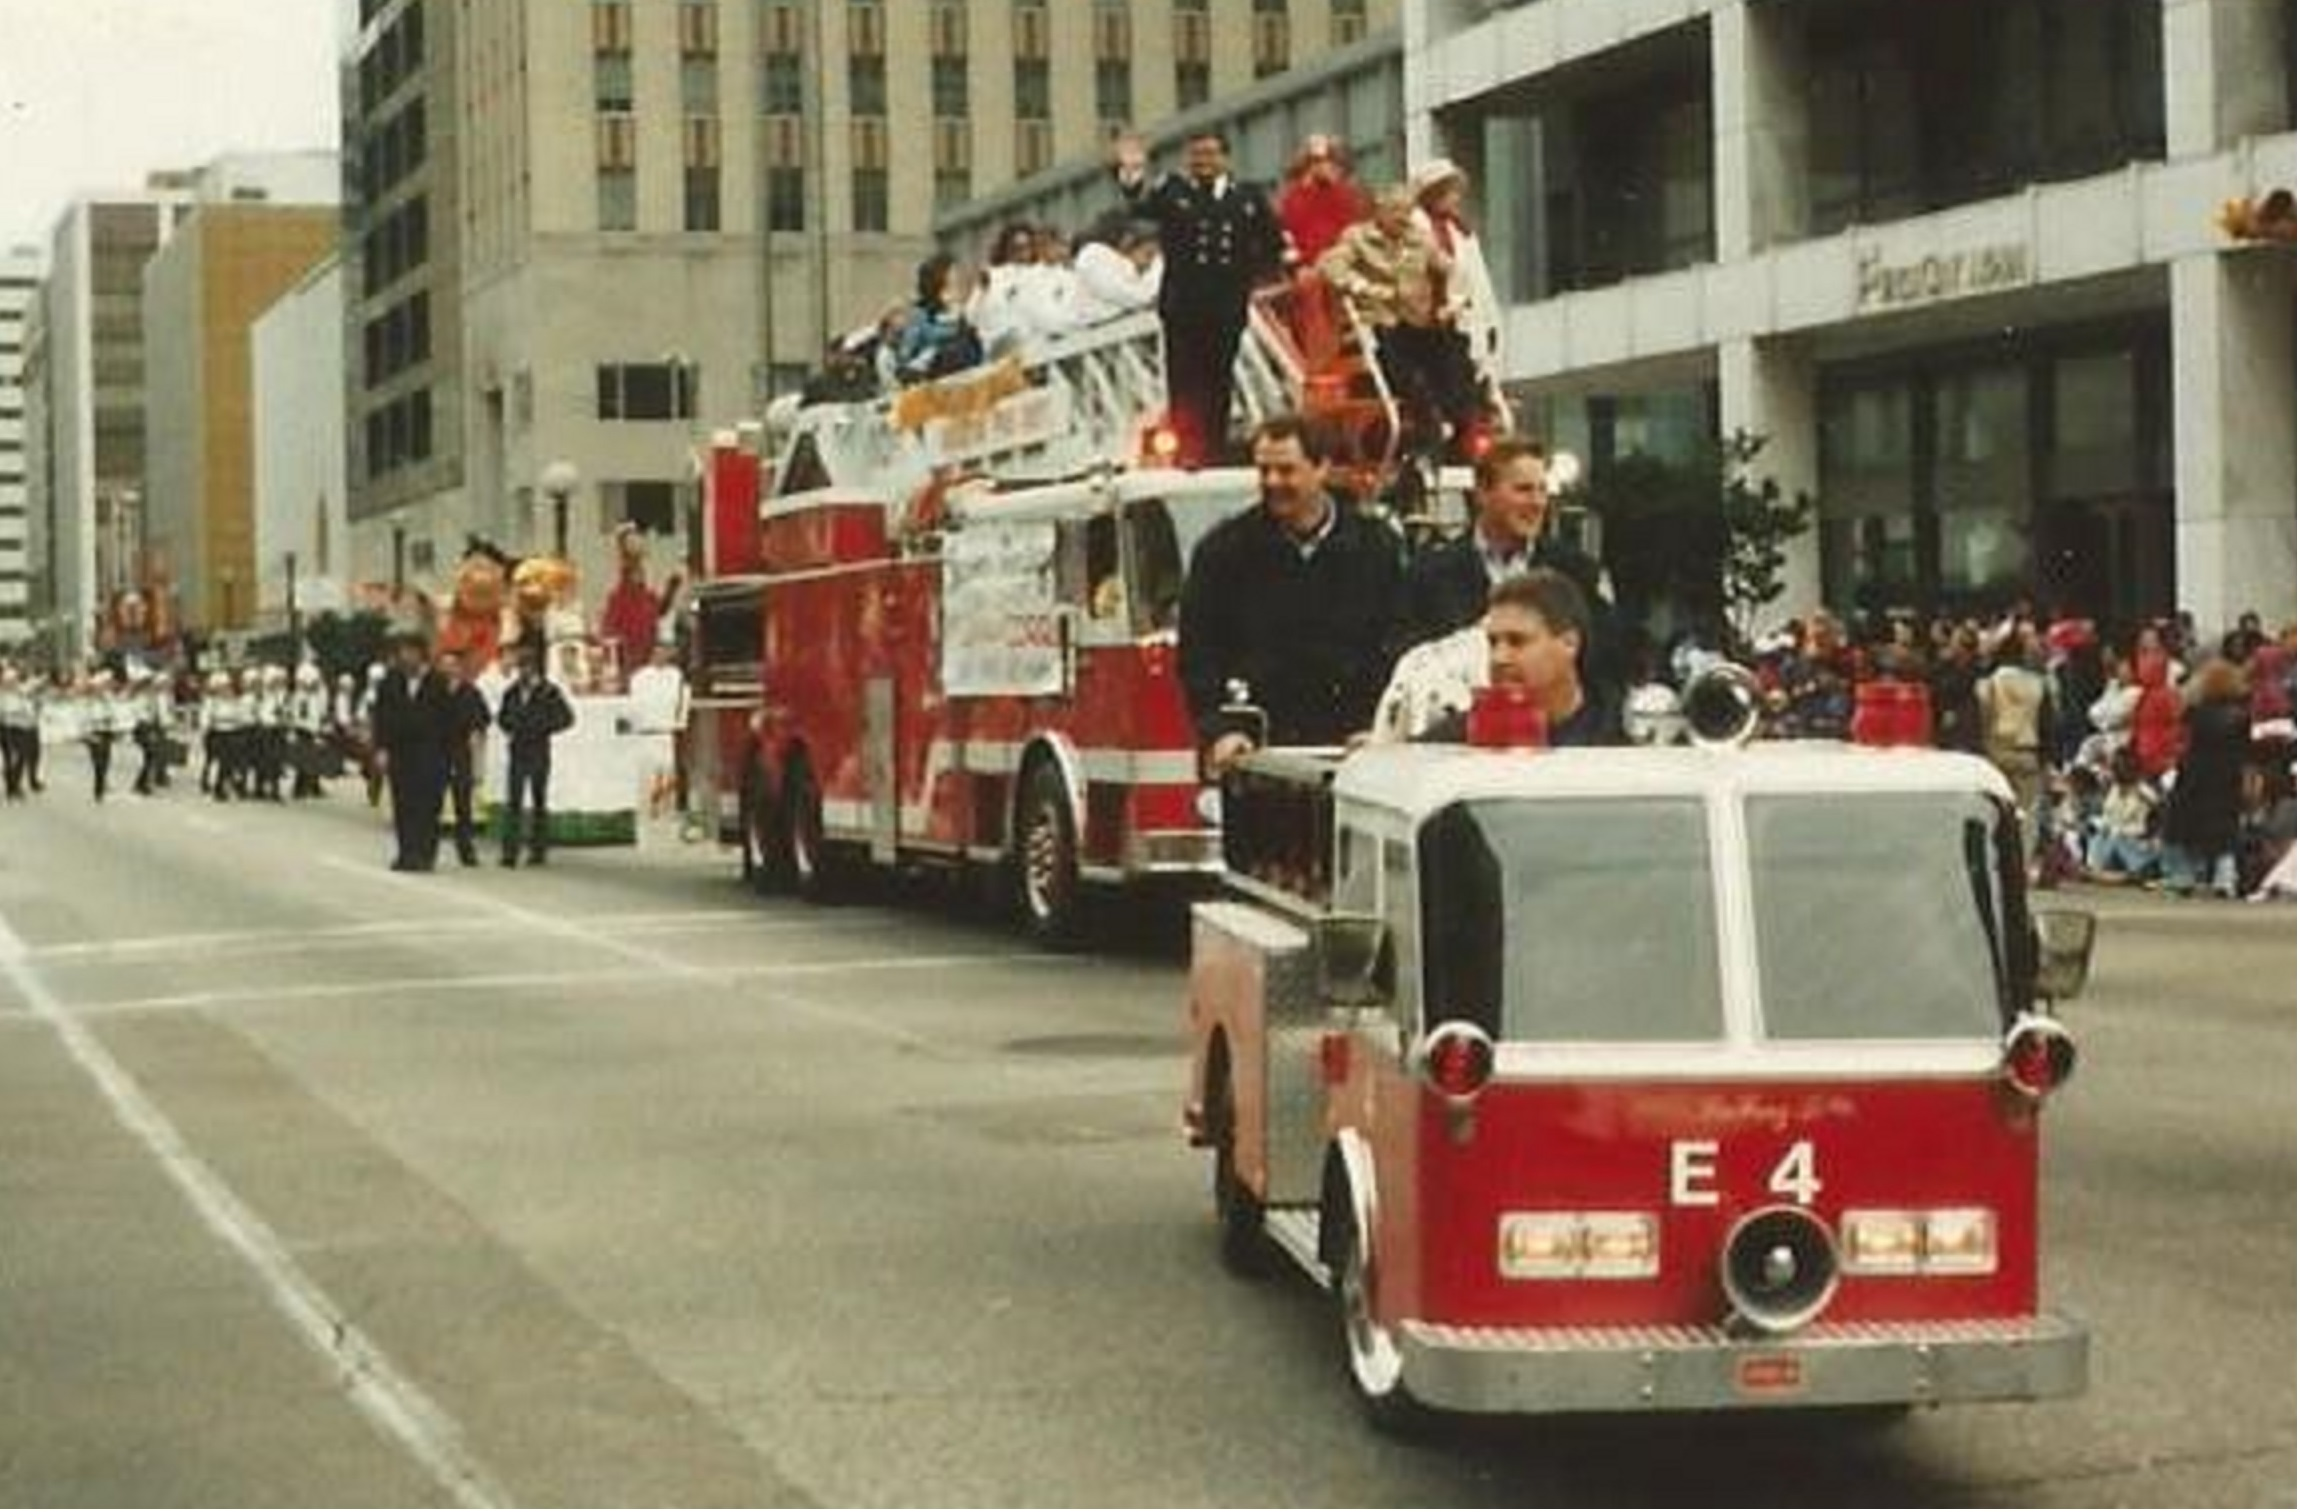 Mini Fire Truck in a Parade